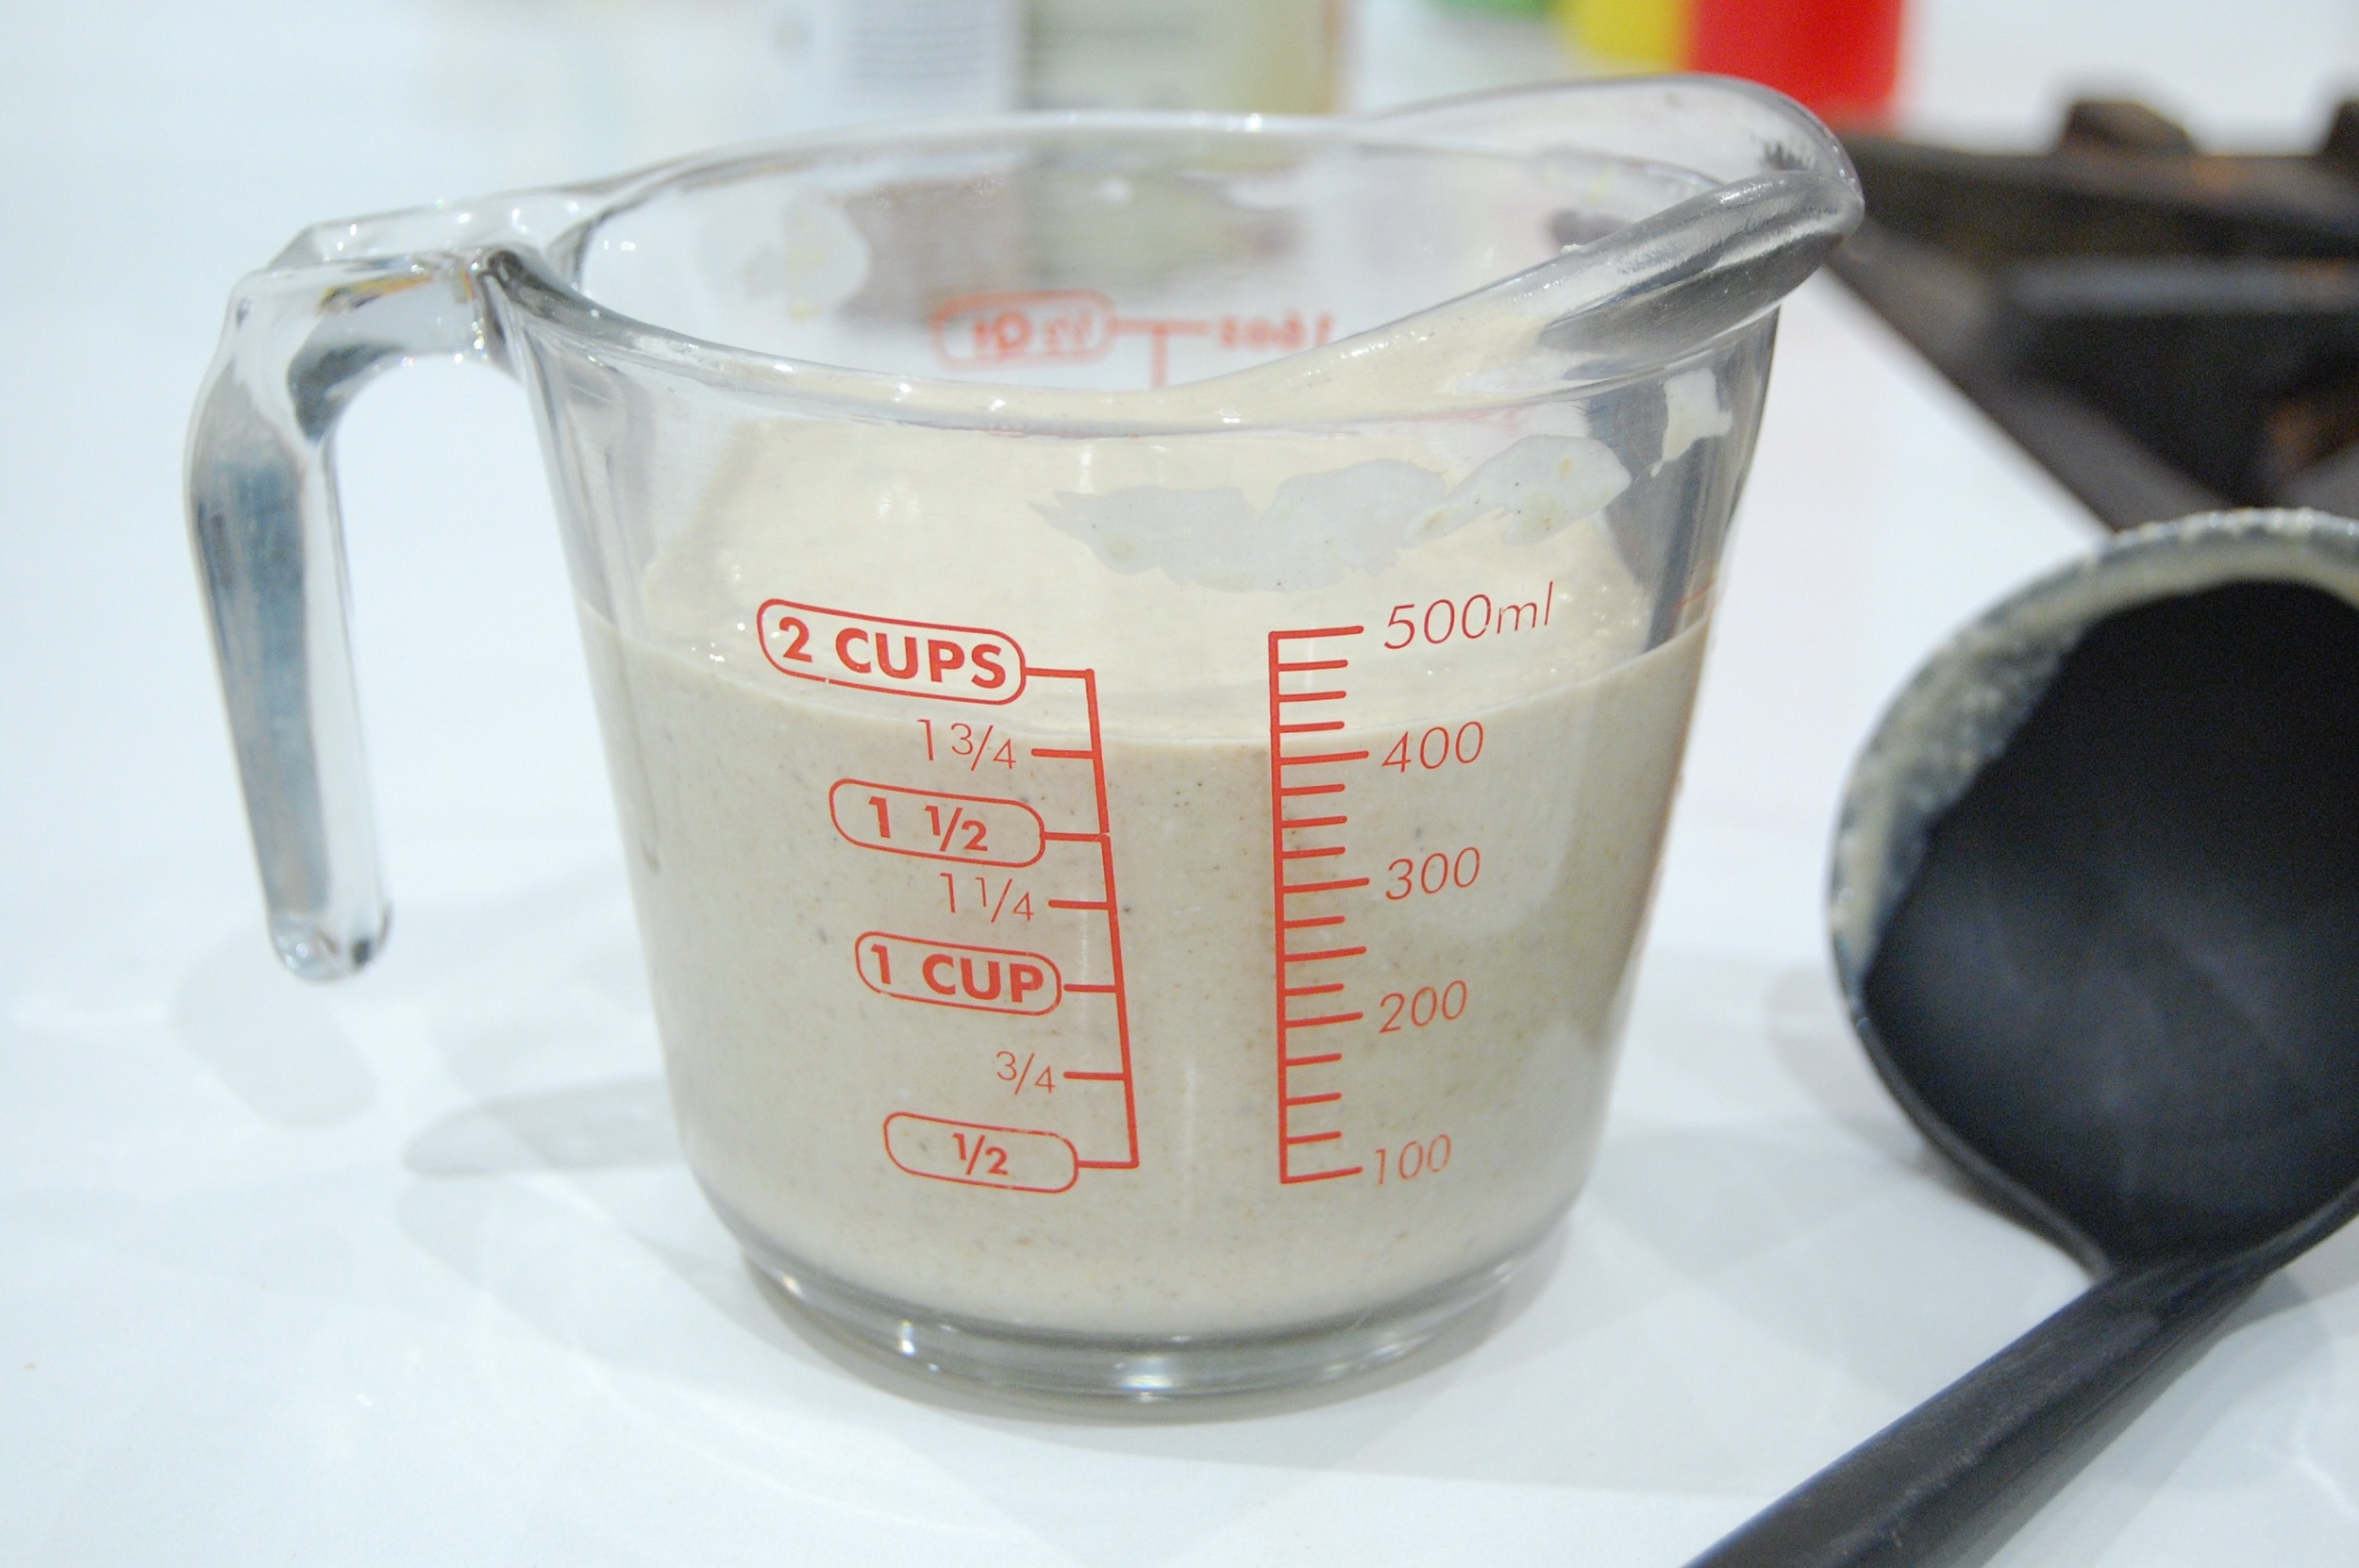 I pour my batter into a measuring cup so it's easier for me to get my ladle in there to spoon out uniform amounts onto the griddle.